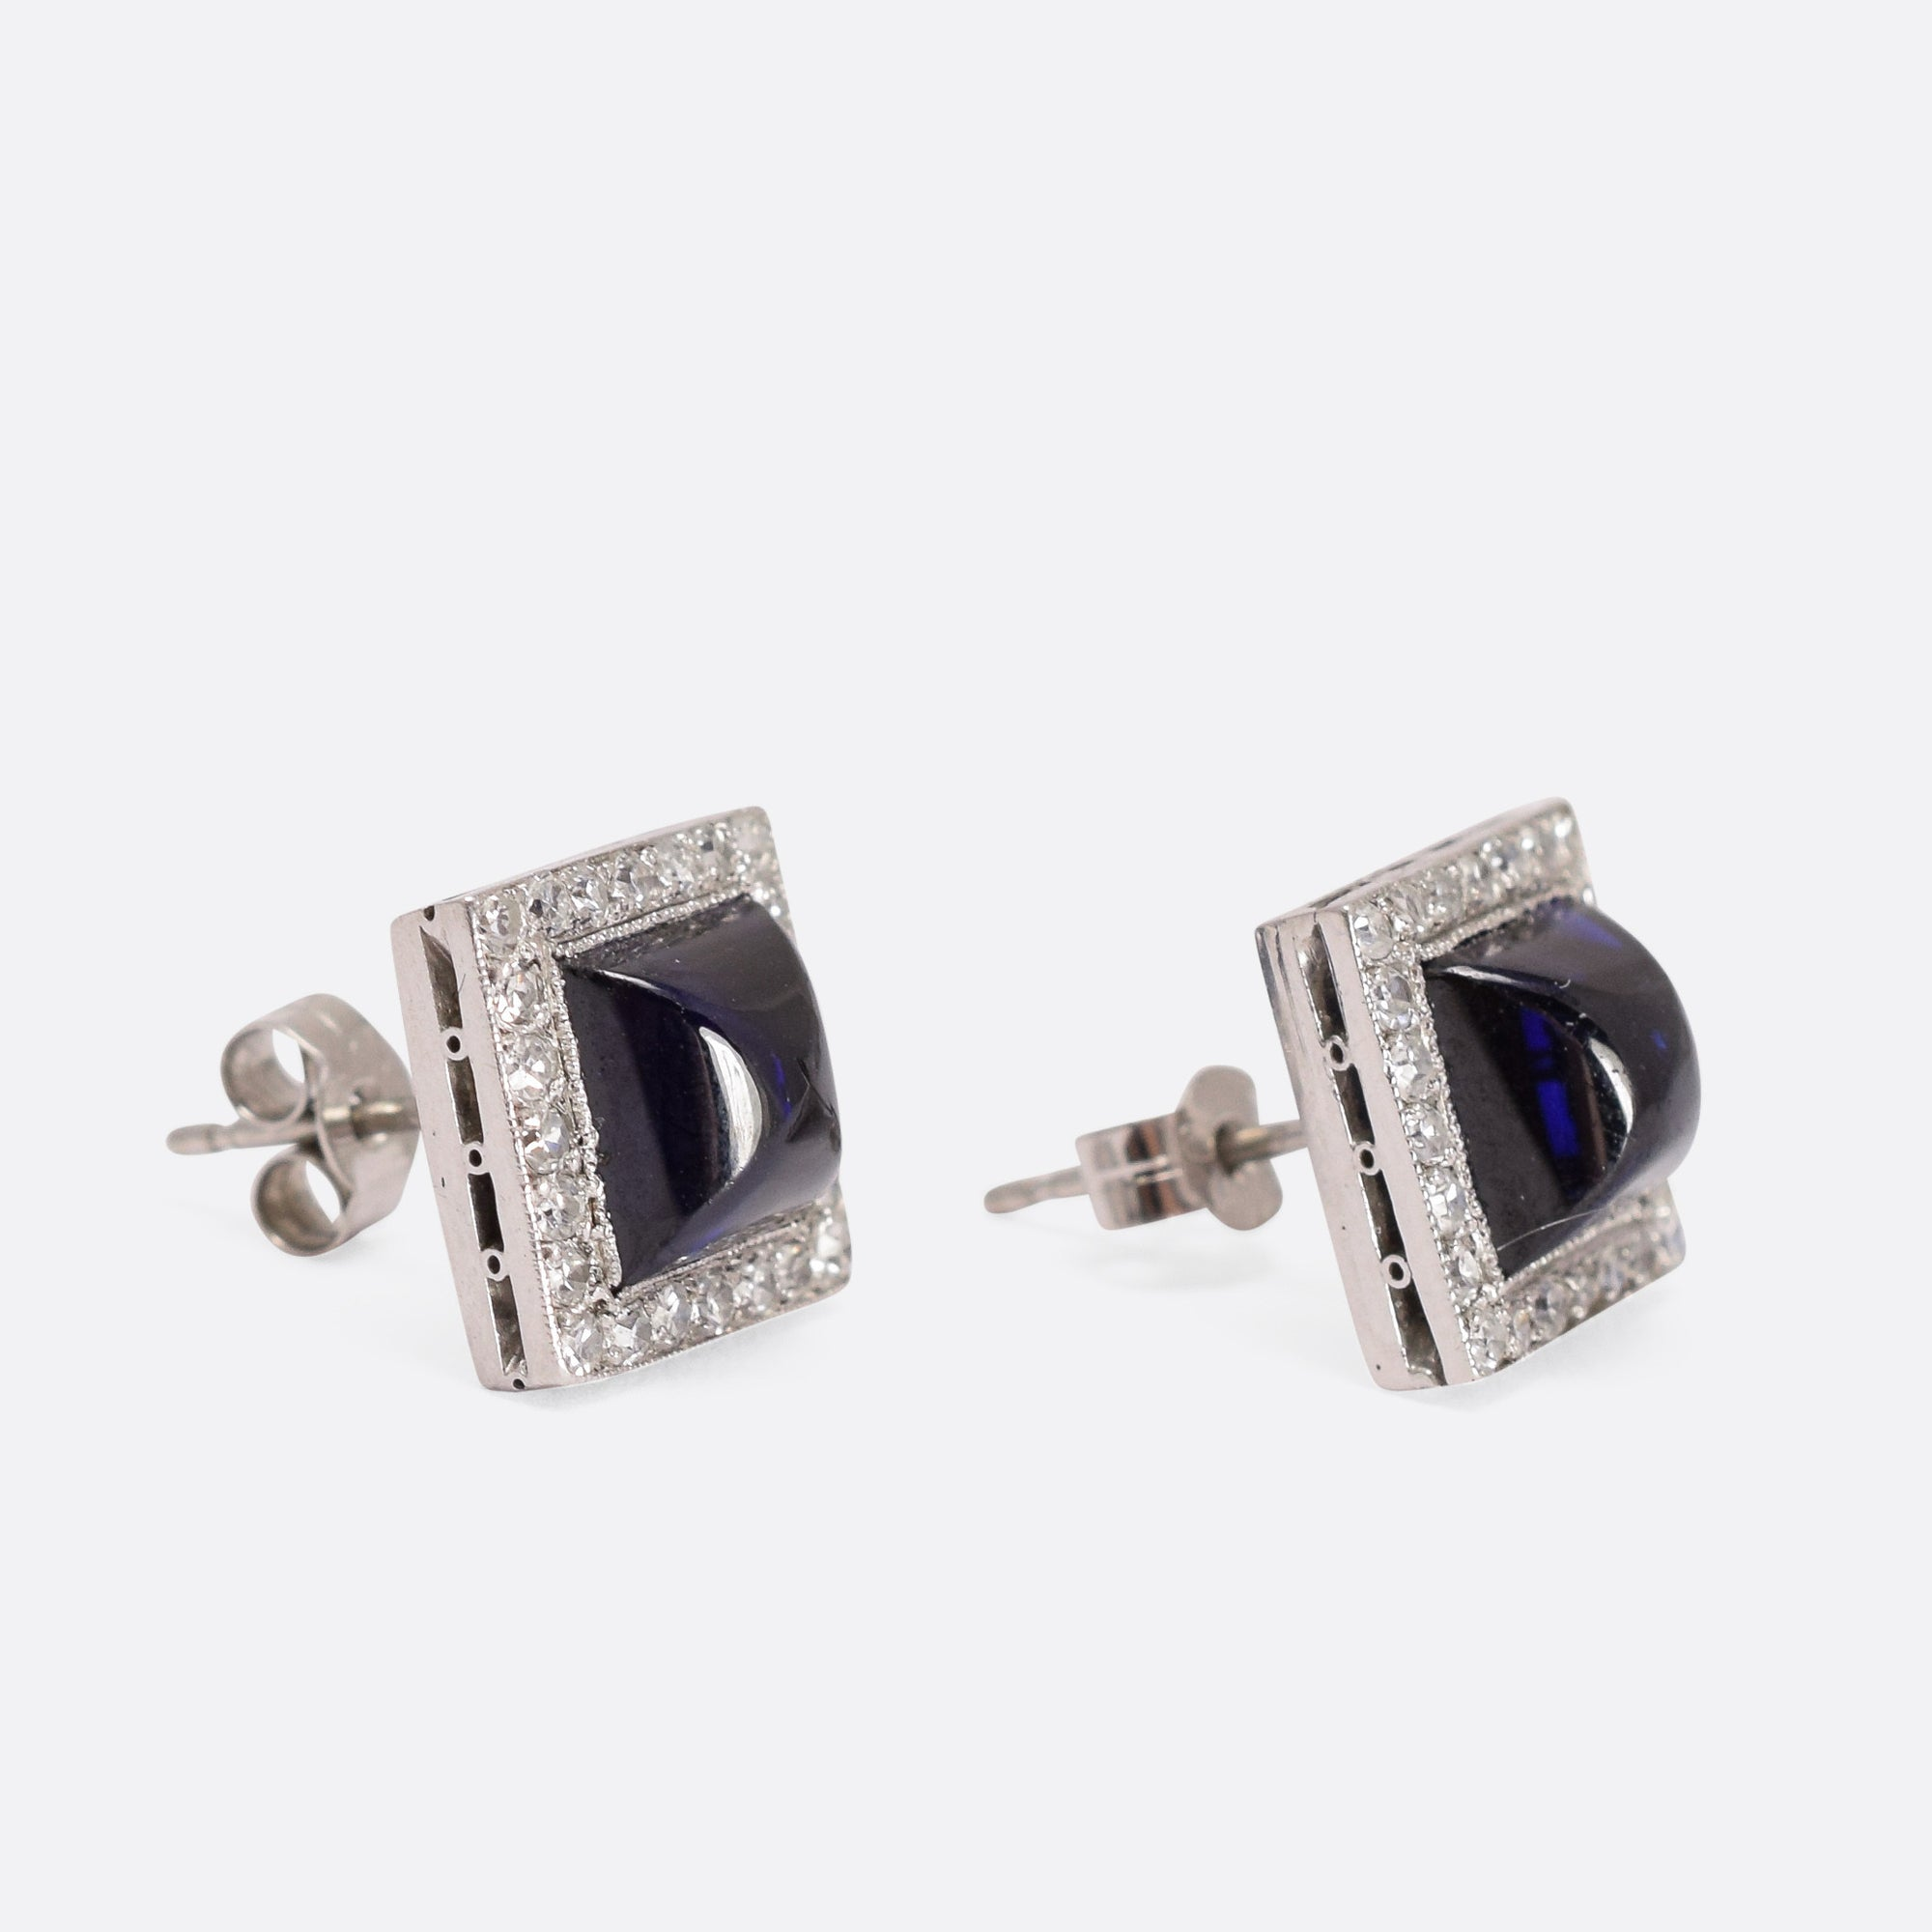 jewelry at antique org studs j stud earrings important id victorian diamond oo